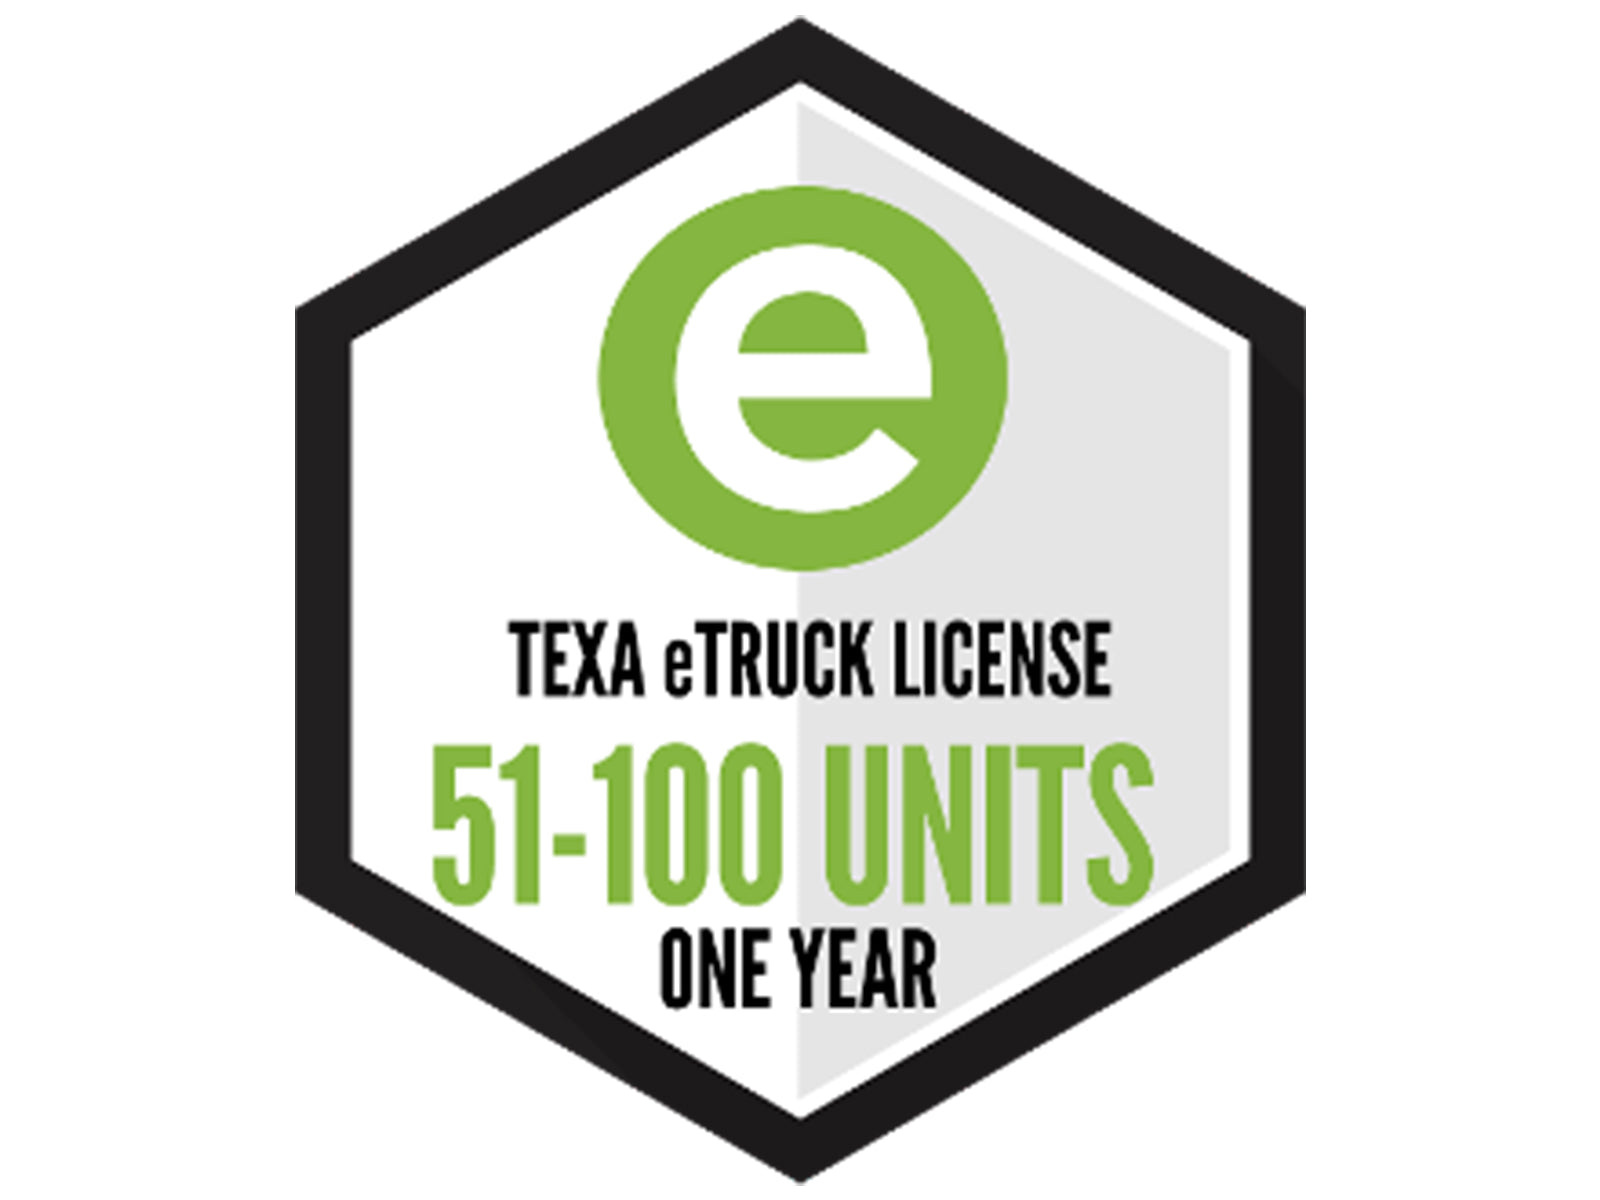 TEXA eTruck Software License for 51-100 Units